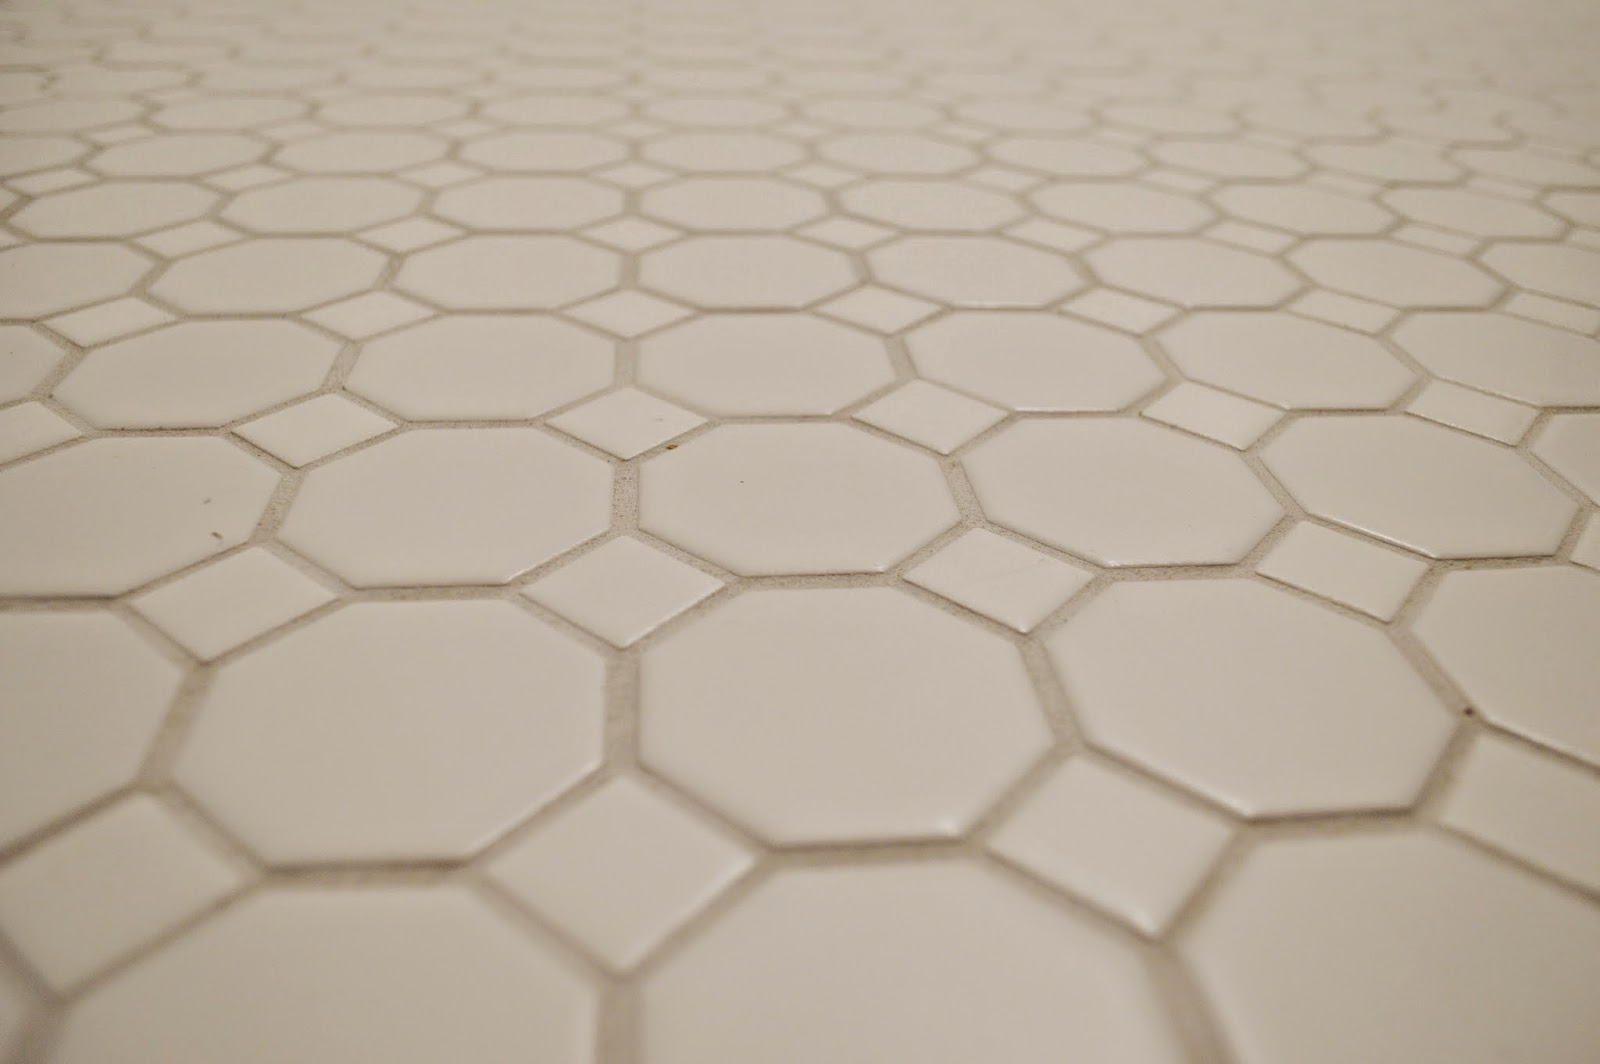 bathroom floor tile sheets - People.davidjoel.co